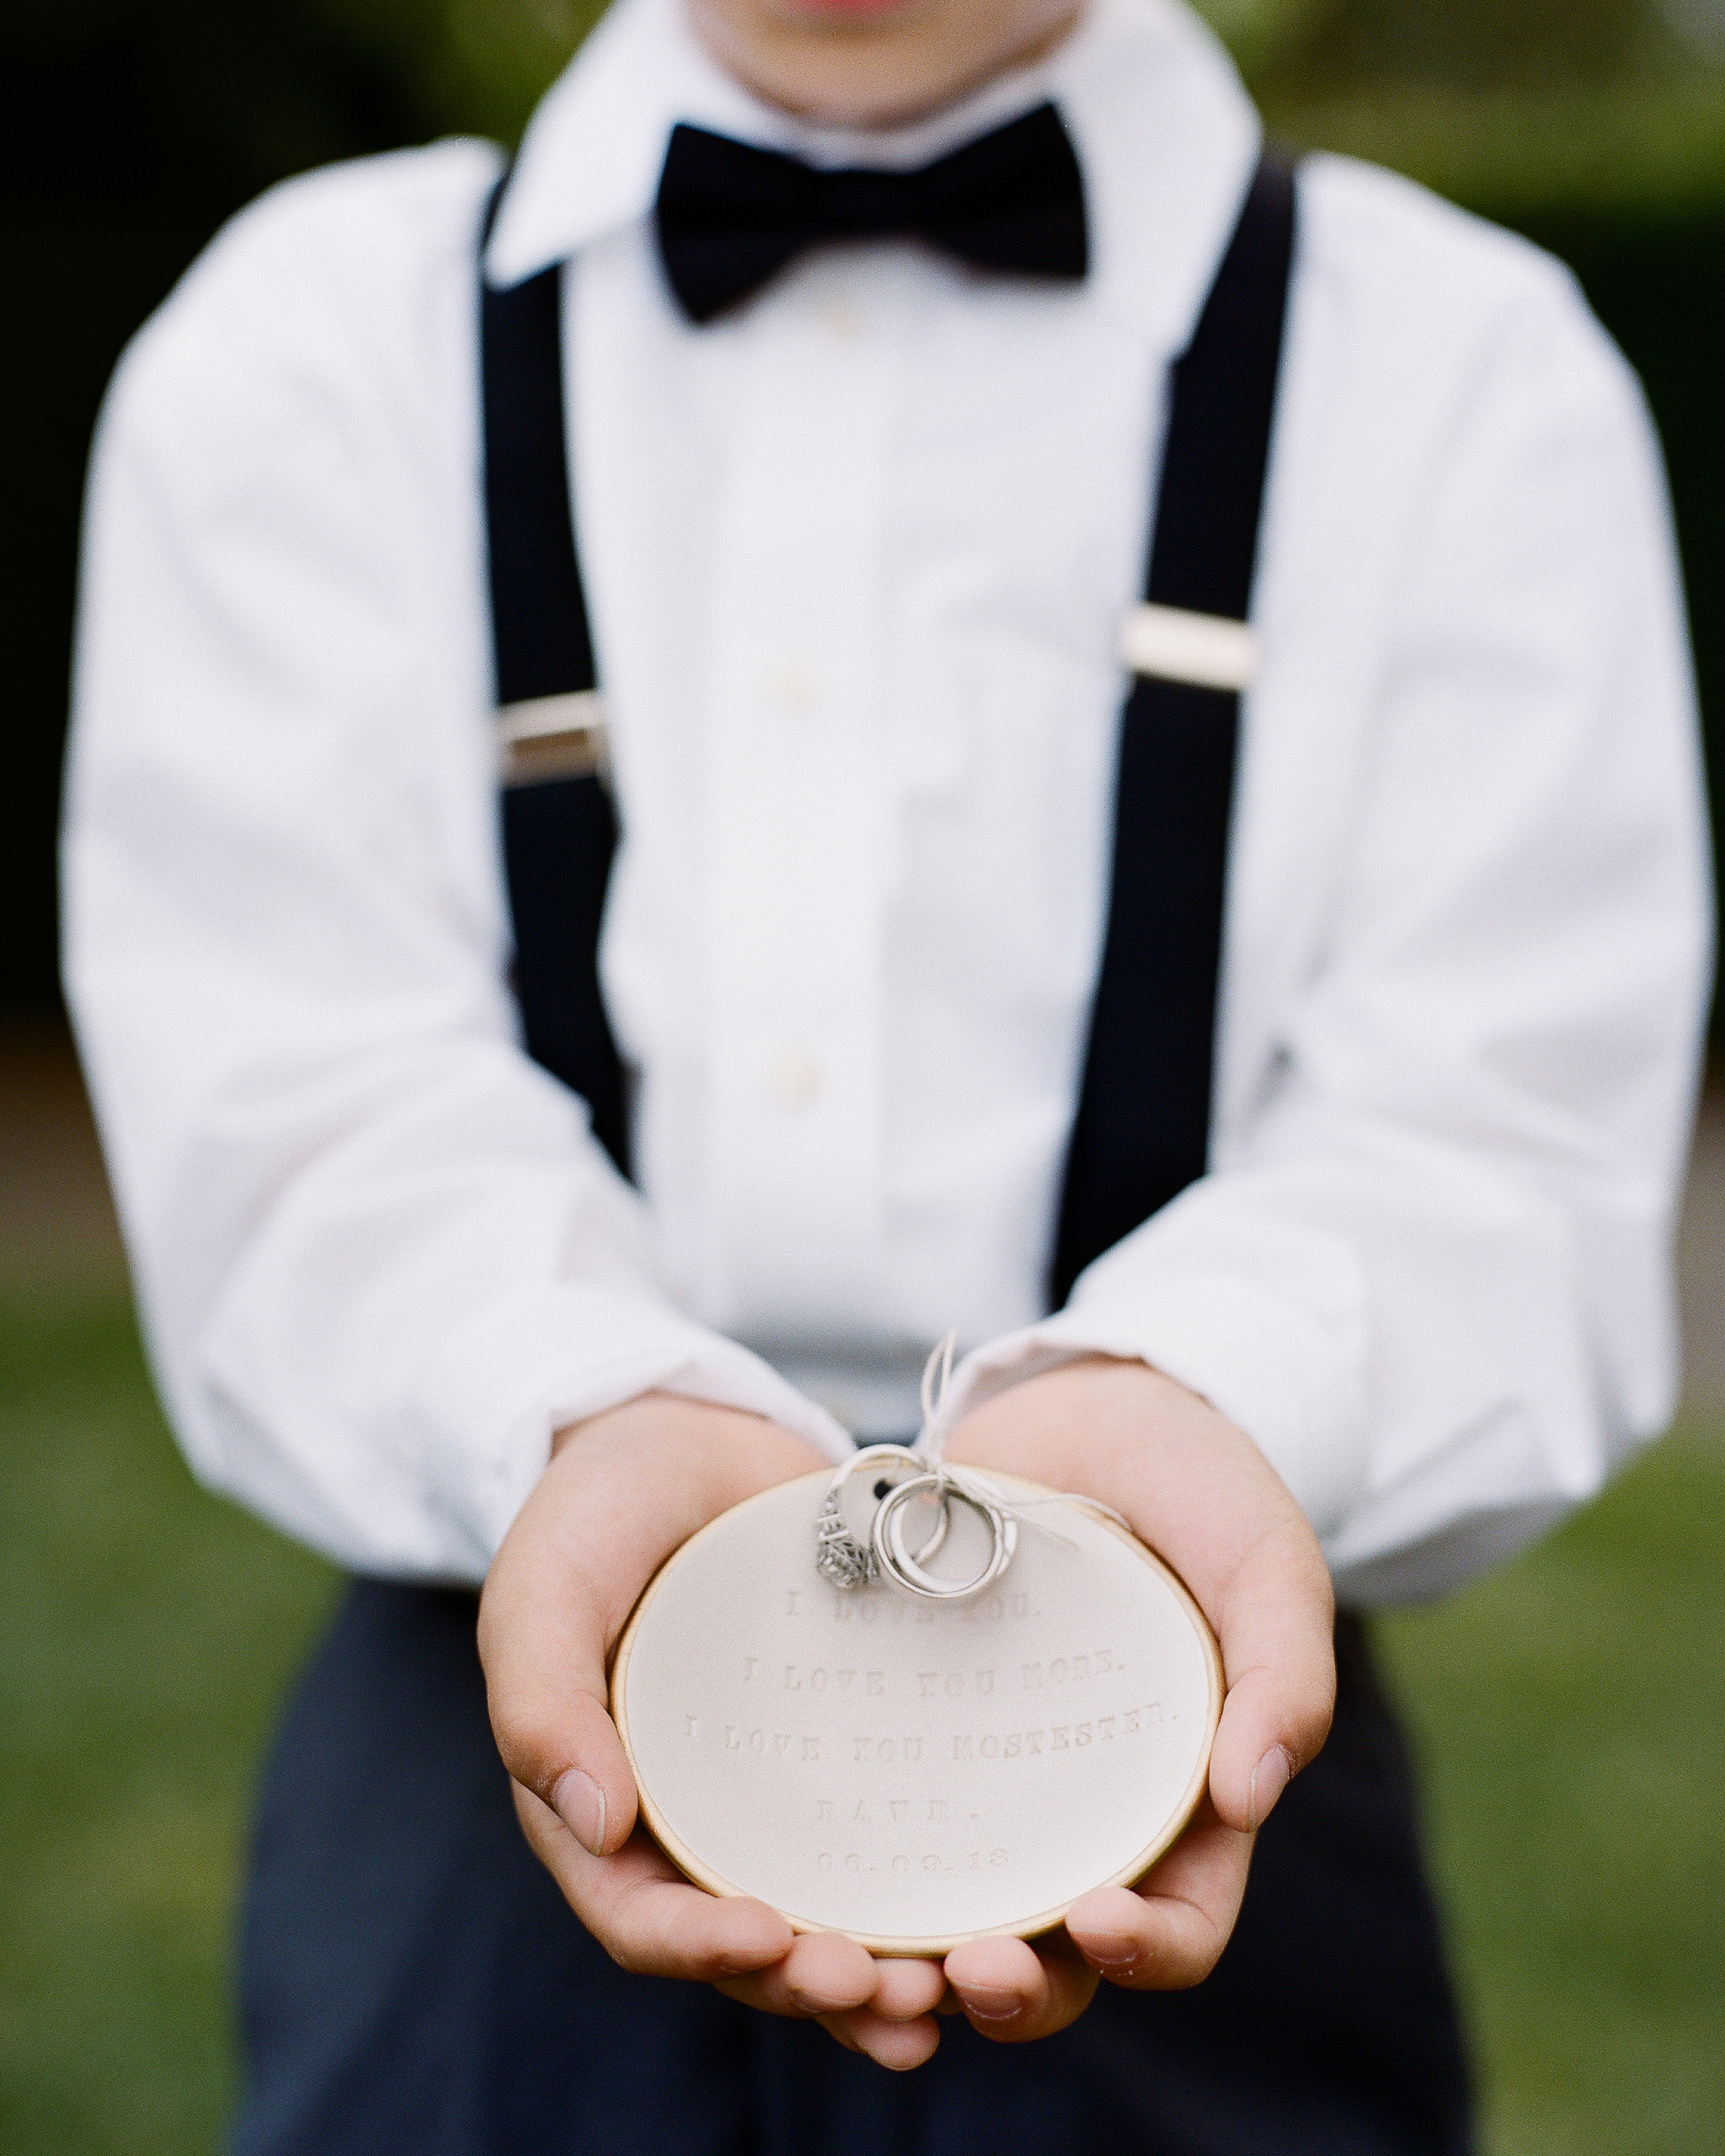 ring bearer holding decorative dish at wedding